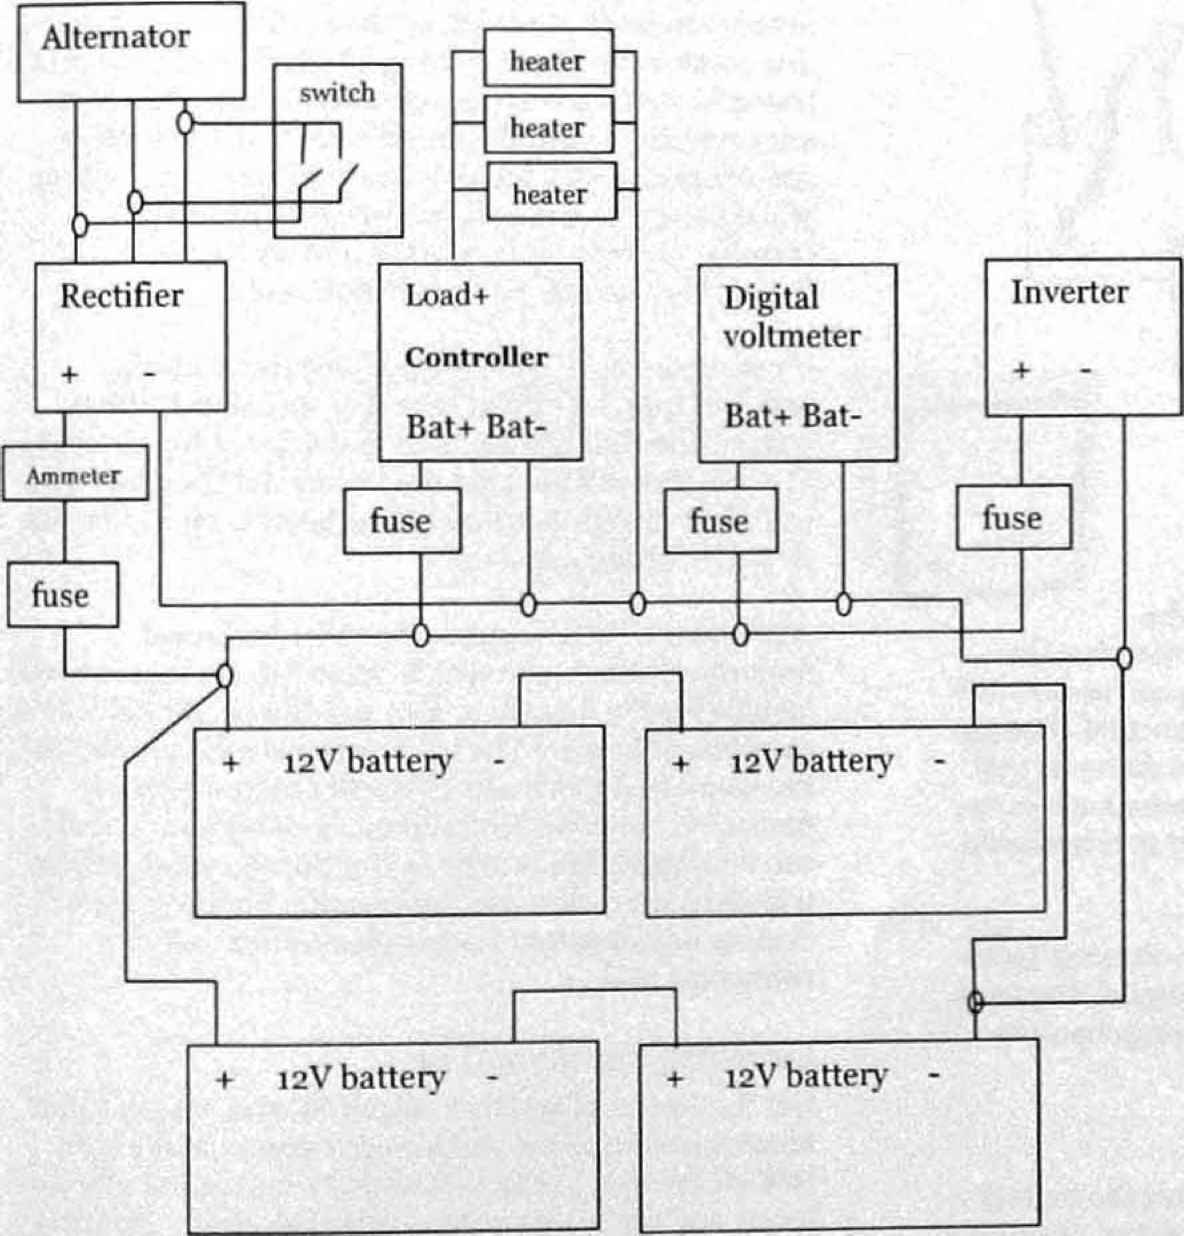 alternator voltmeter wiring diagram